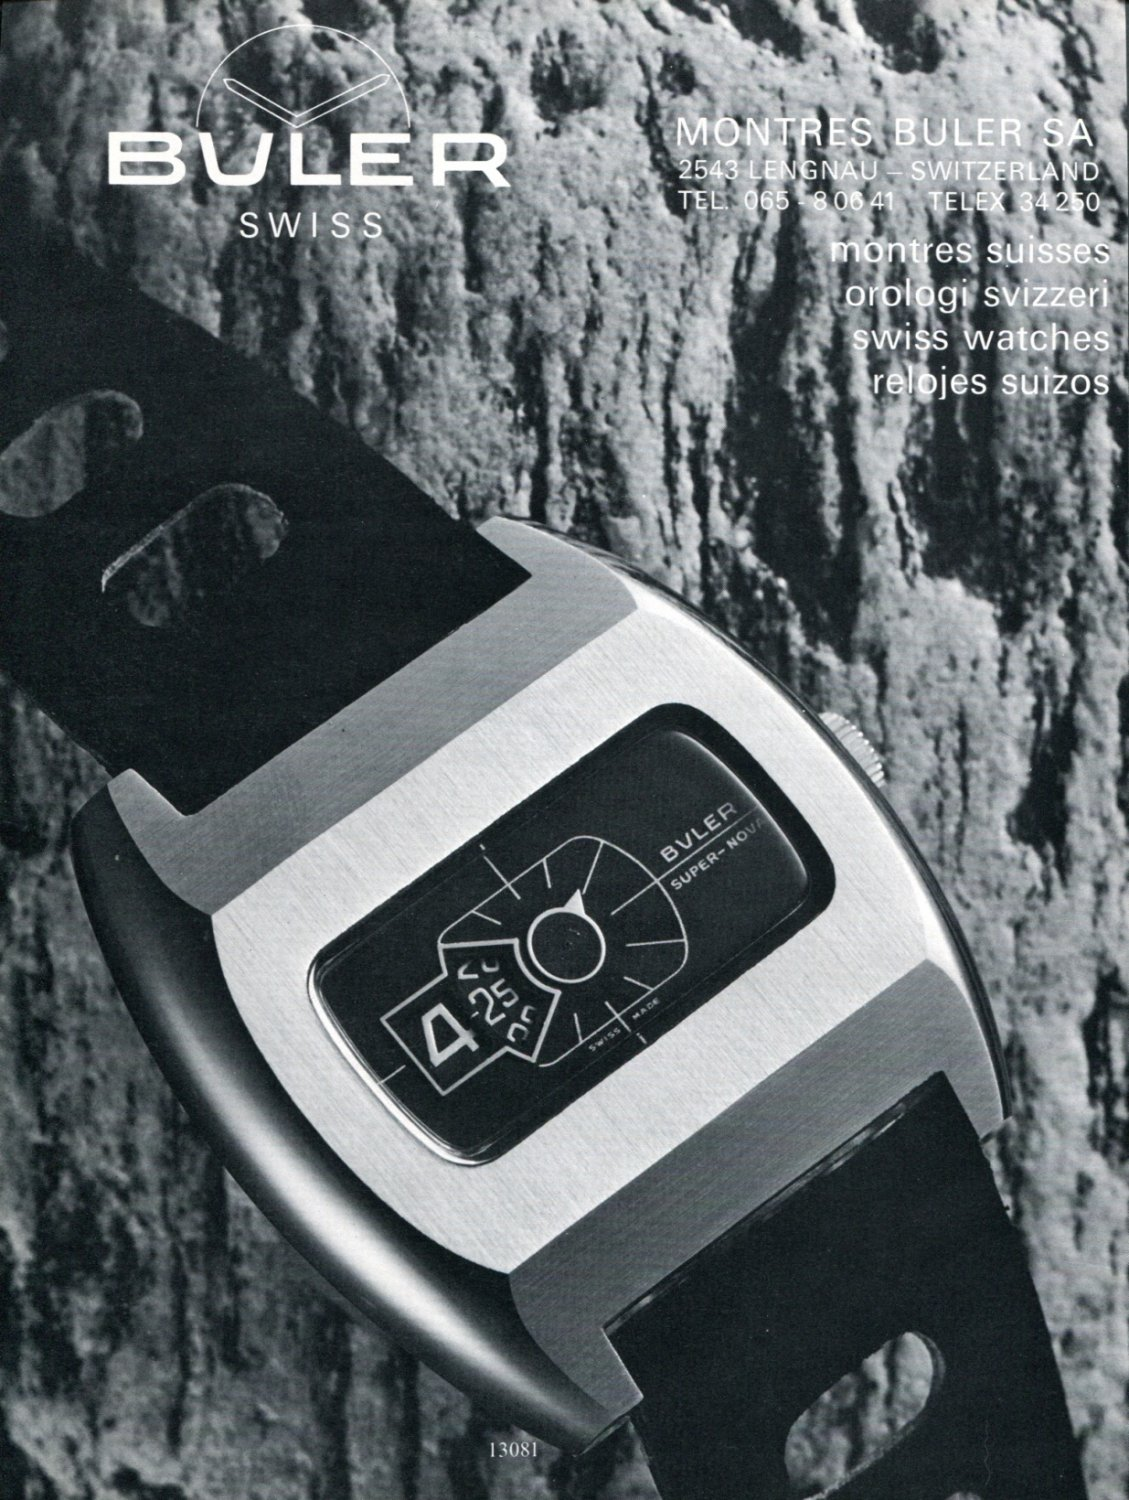 1972 Buler Watch Company Montres Buler SA Switzerland 1972 Swiss Ad Suisse Advert Horology